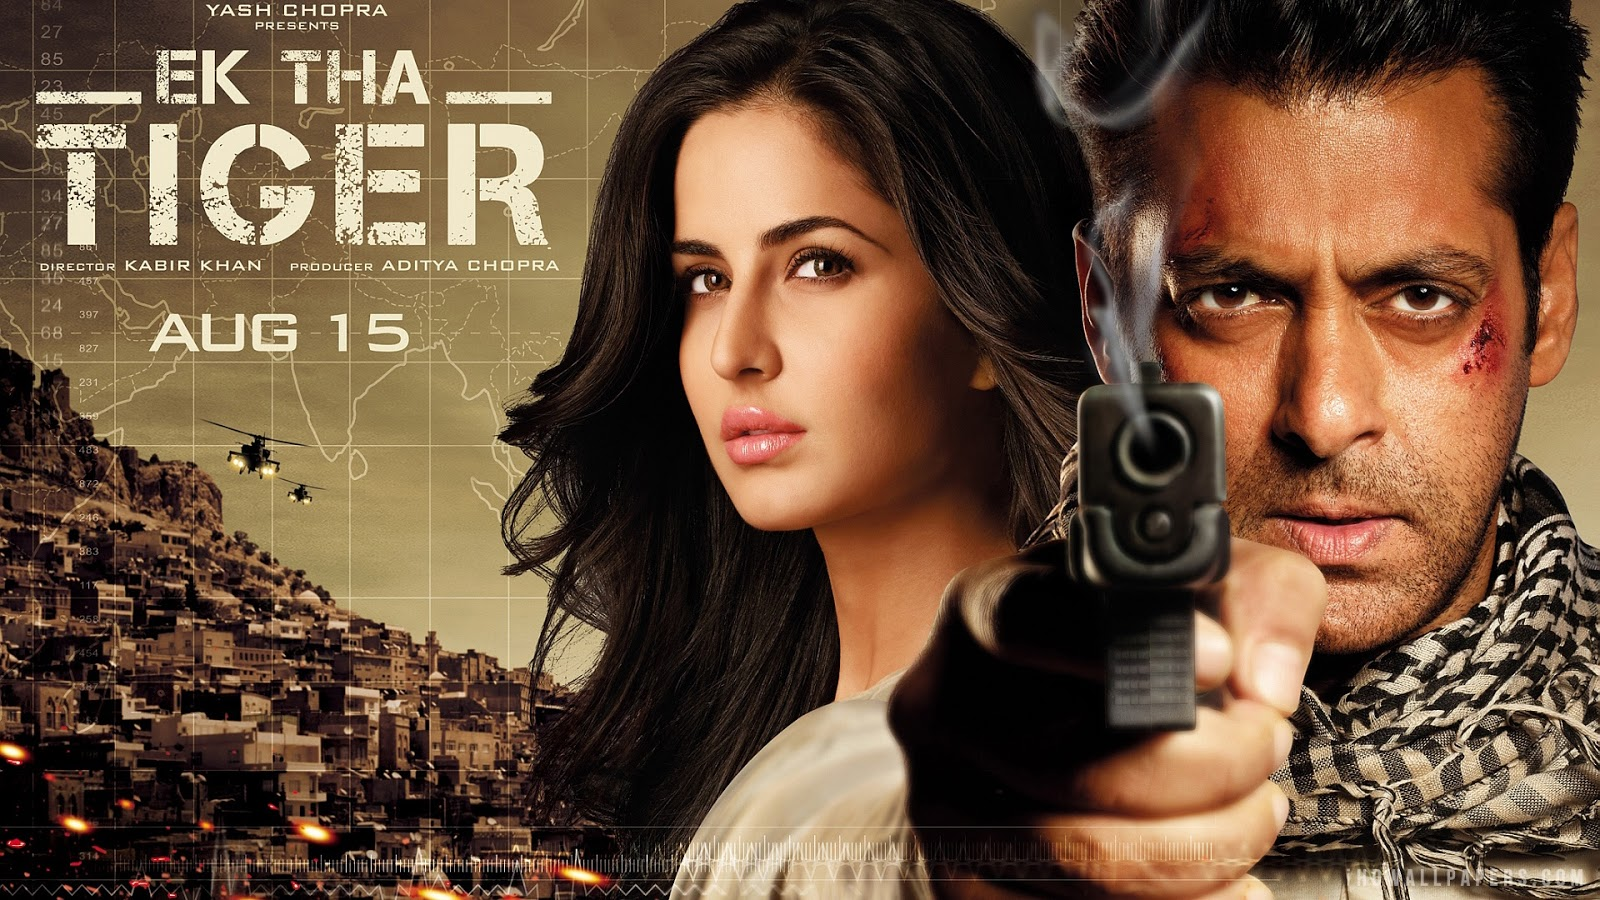 Salman Khan with Ex-Girlfriend Katrina Kaif in Ek Tha Tiger Movie